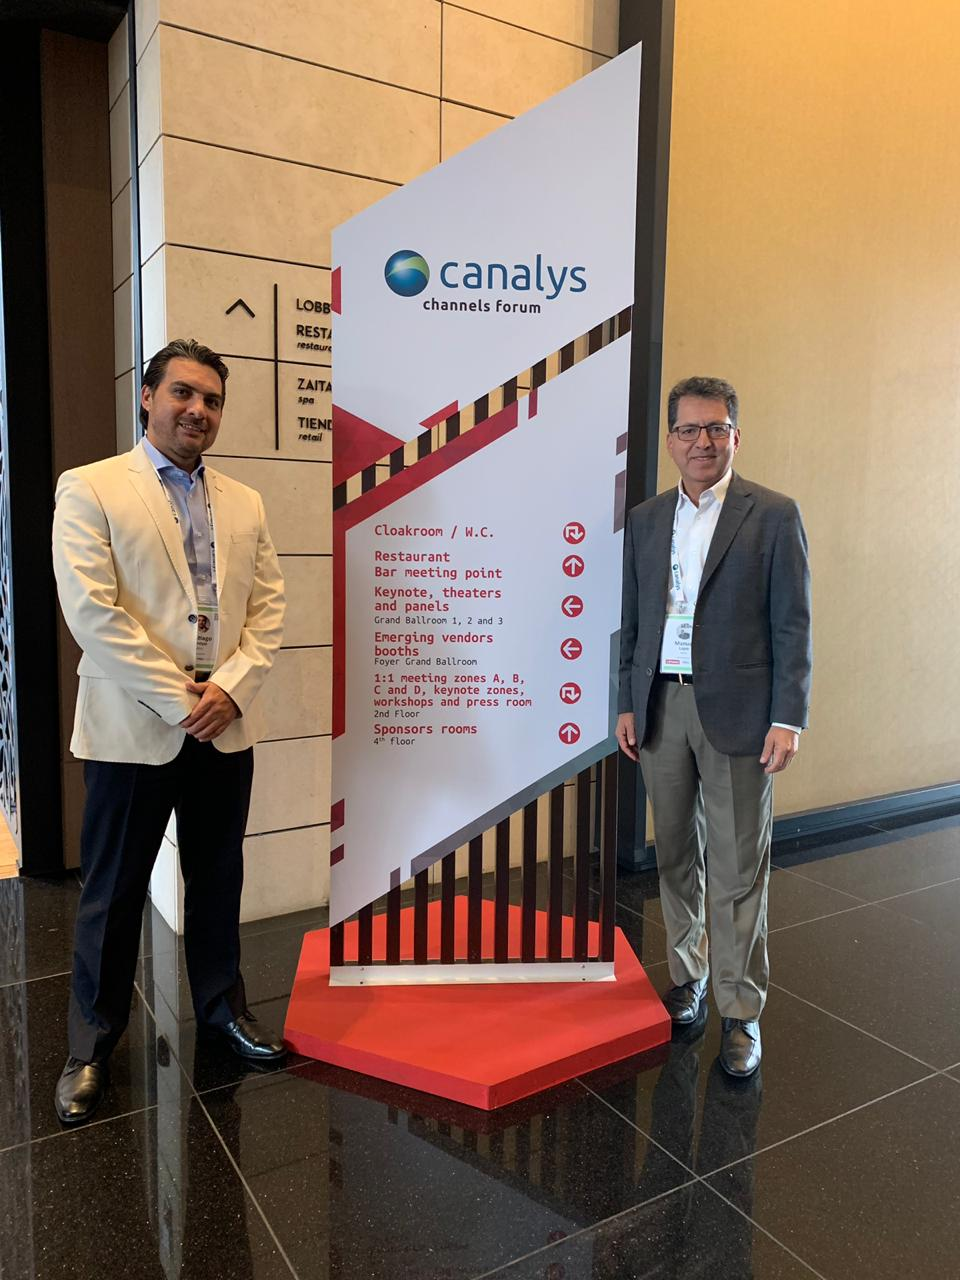 Evento Canalys Channels